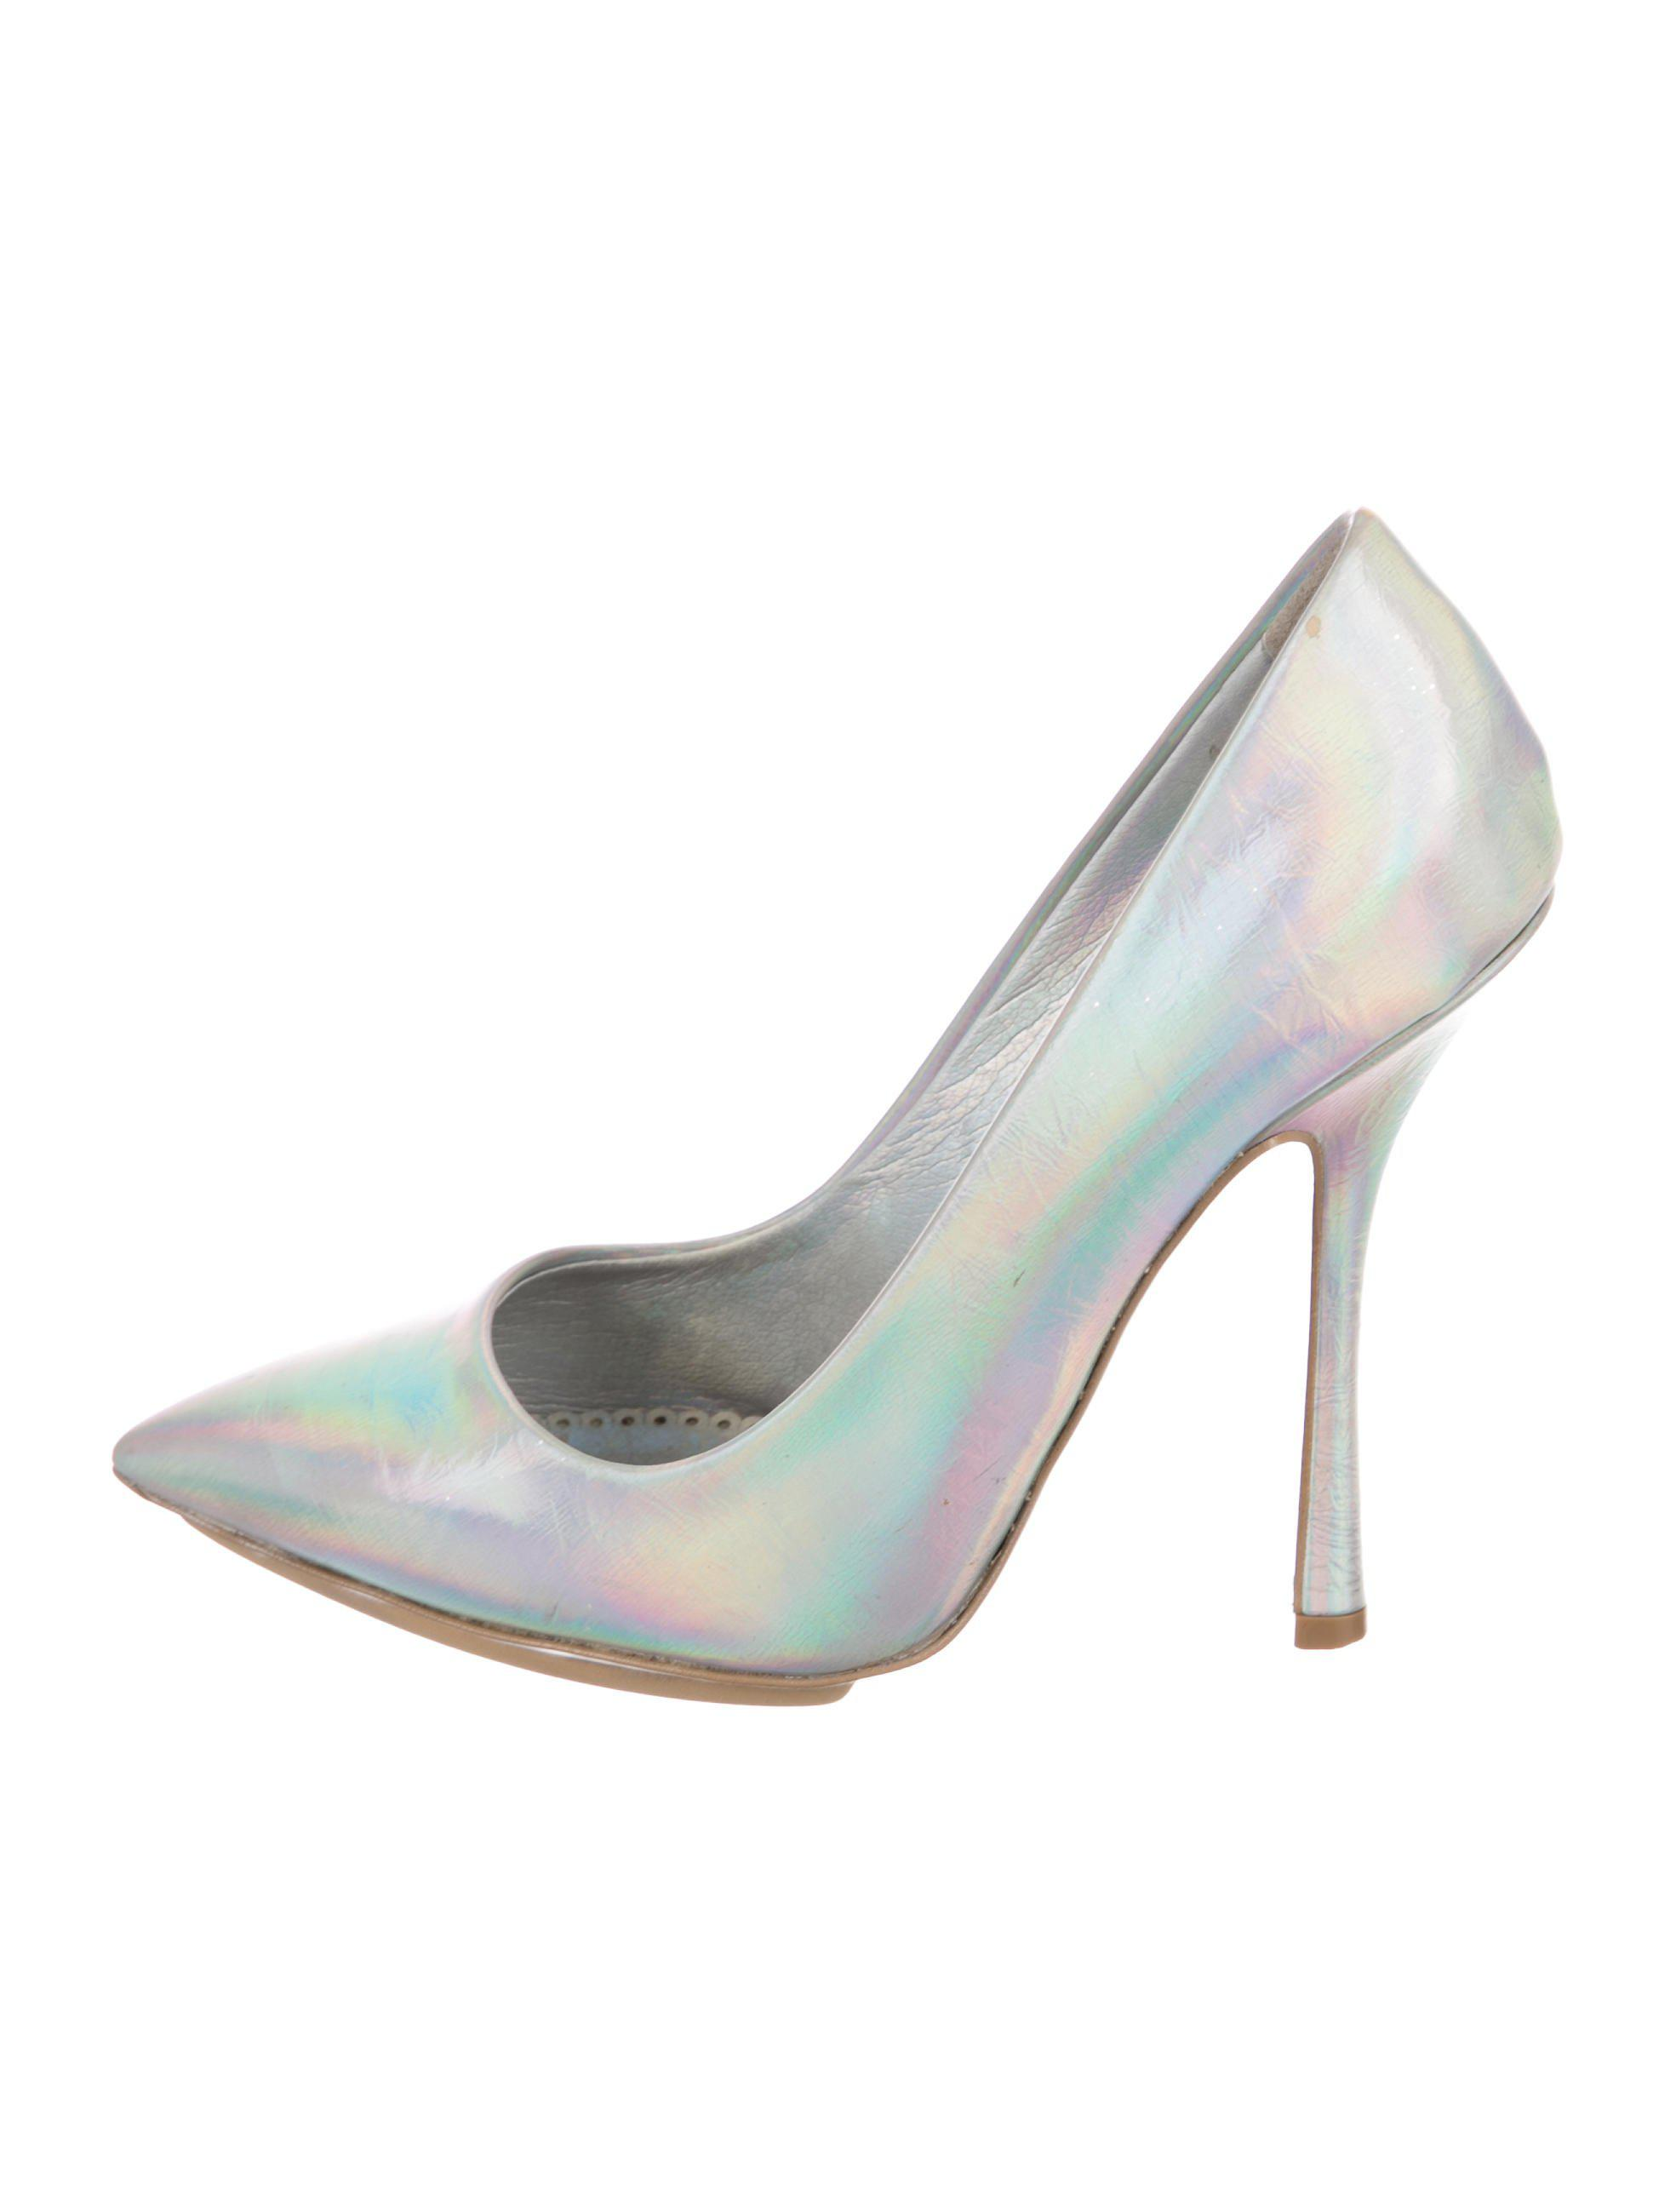 sale from china Stella McCartney Vegan Holographic Pumps clearance 100% guaranteed free shipping 2015 new huge surprise genuine for sale YHIcF